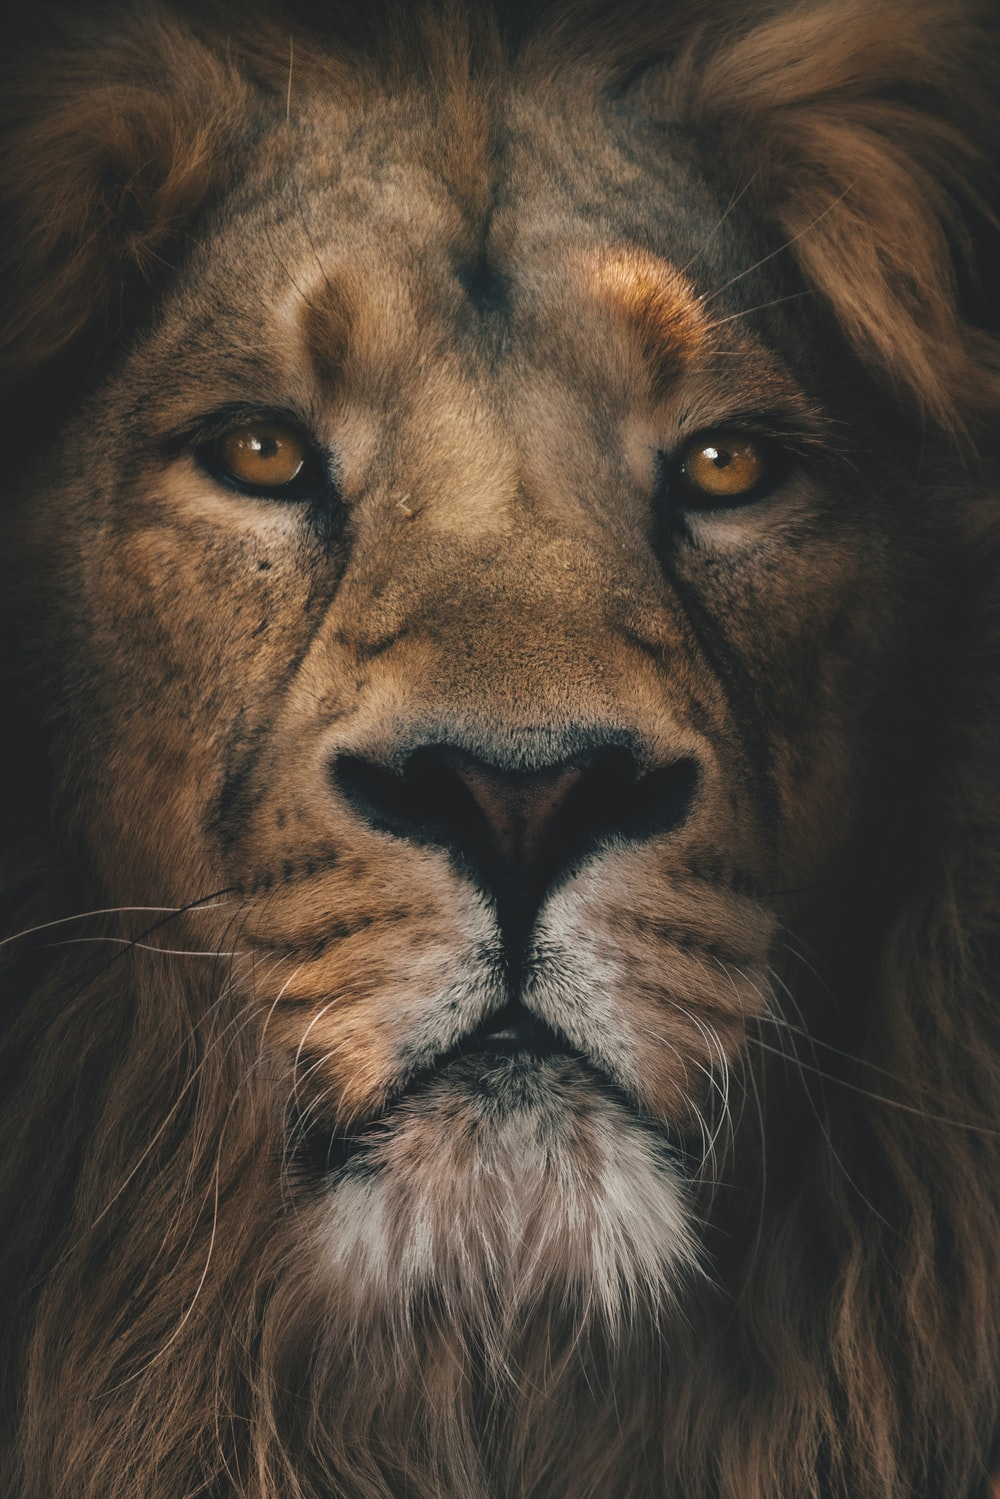 brown lion in close up photography